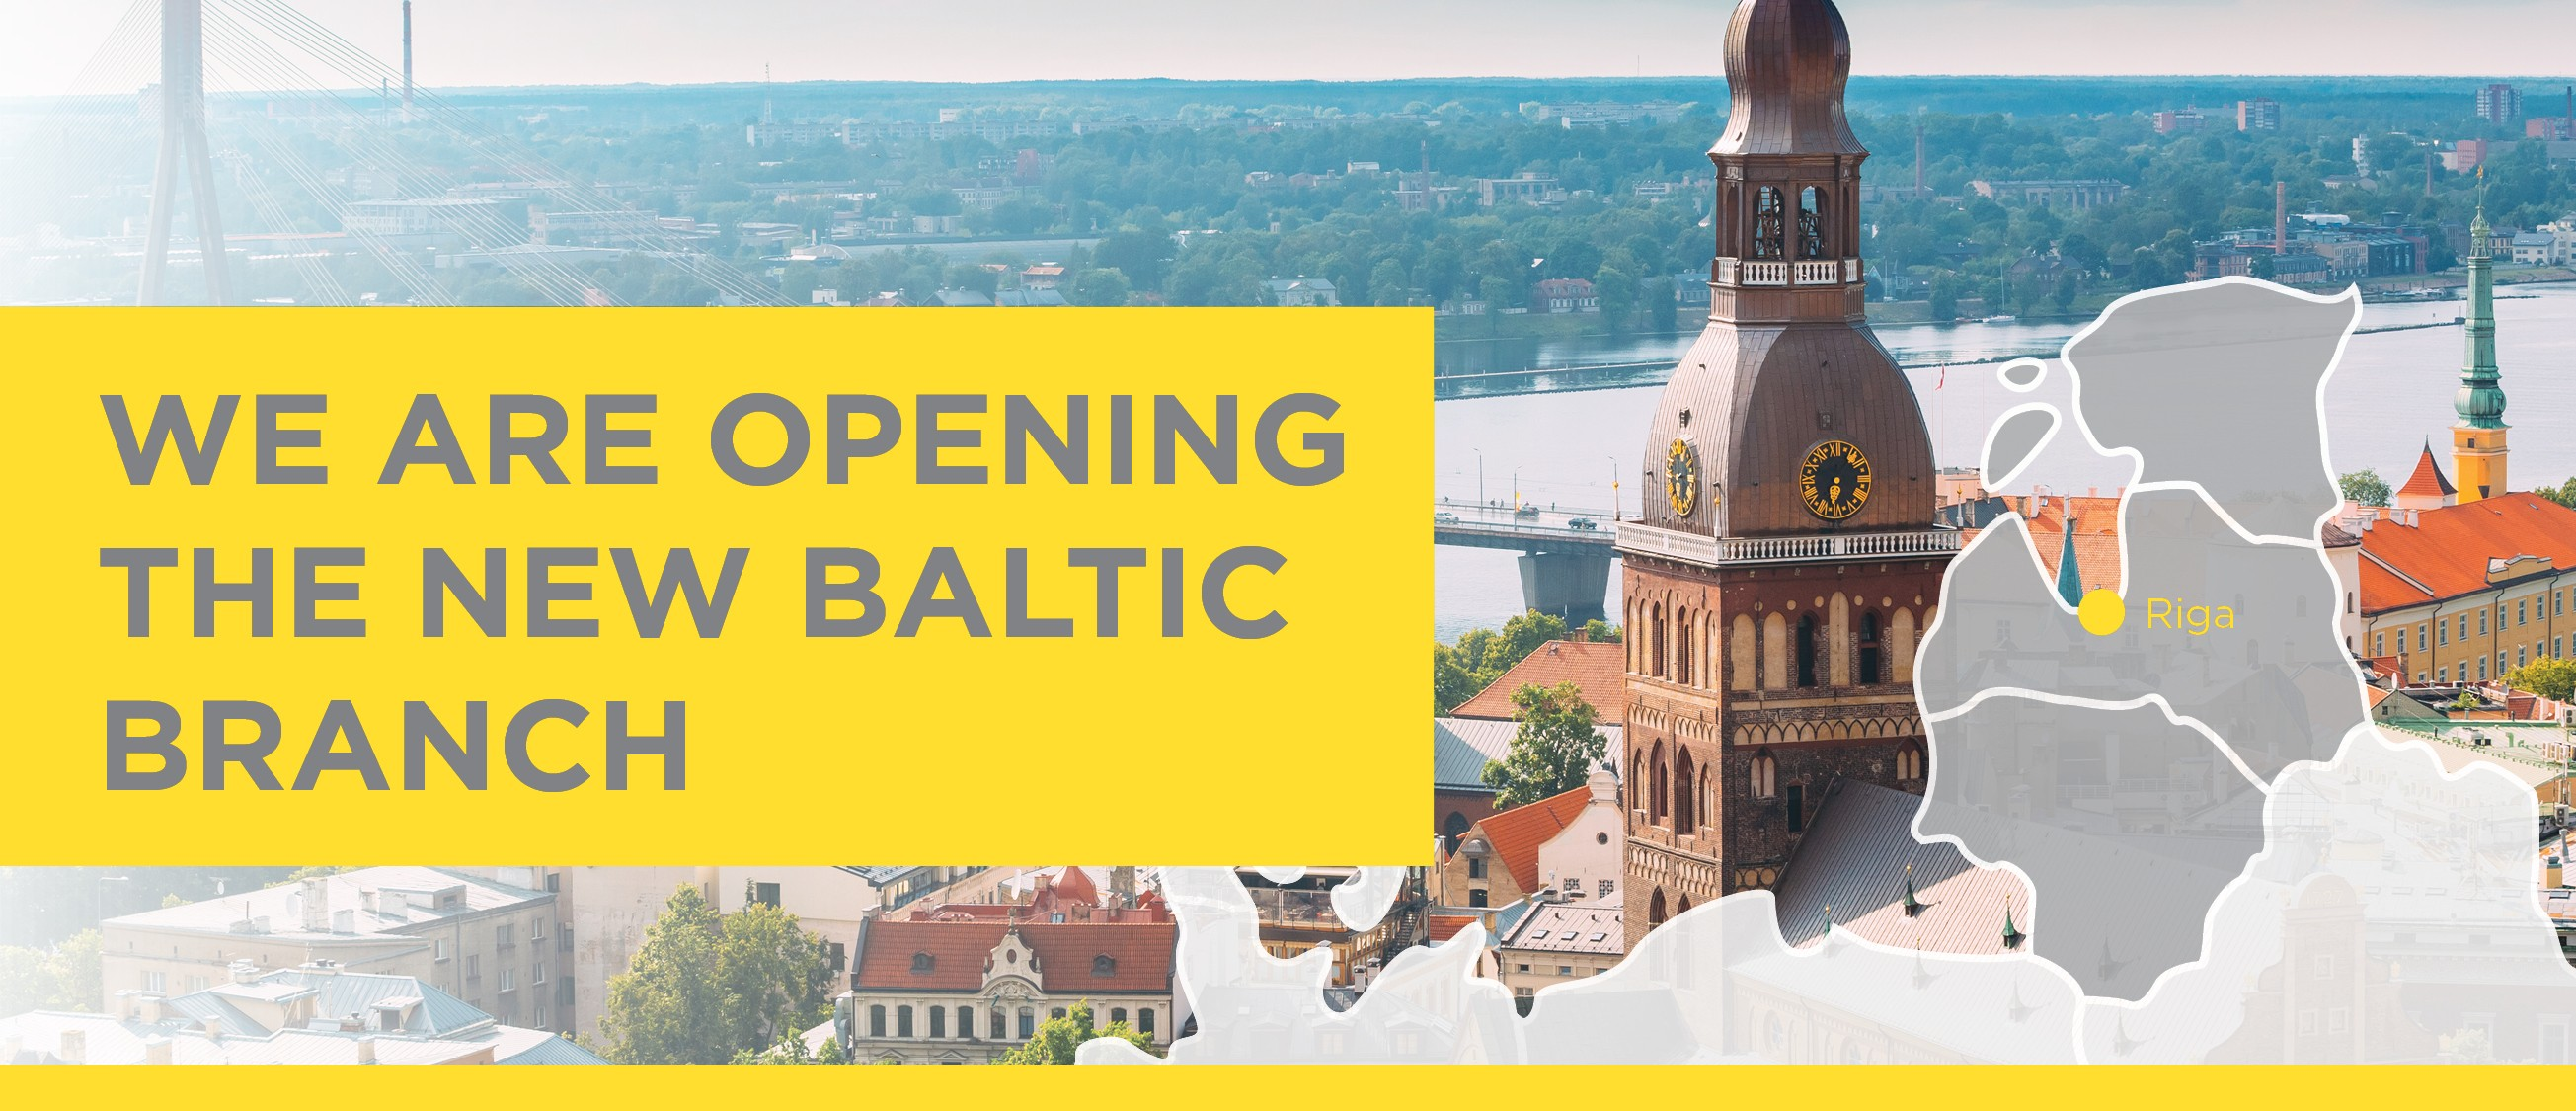 We are opening the new Baltic branch photo